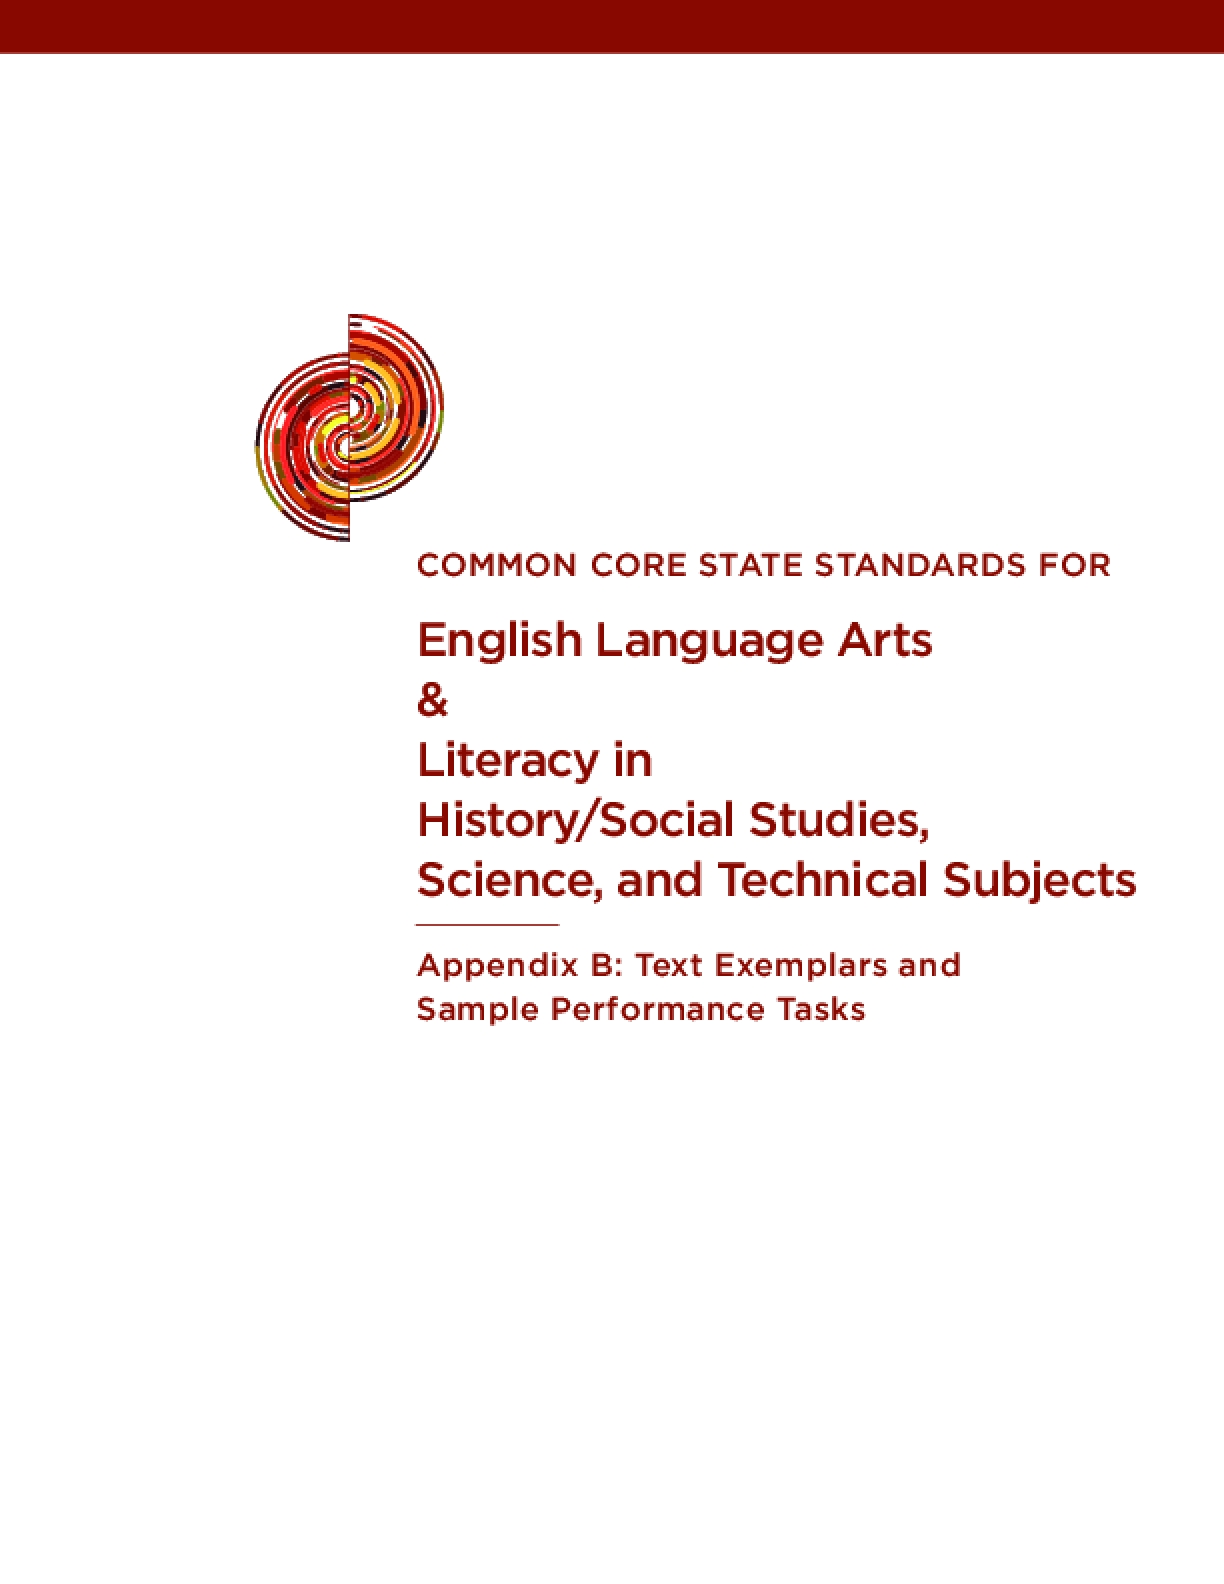 Common Core State Standards for English Language Arts & Literacy in History/Social Studies, Science, and Technical Subjects Appendix B: Text Exemplars and Sample Performance Tasks